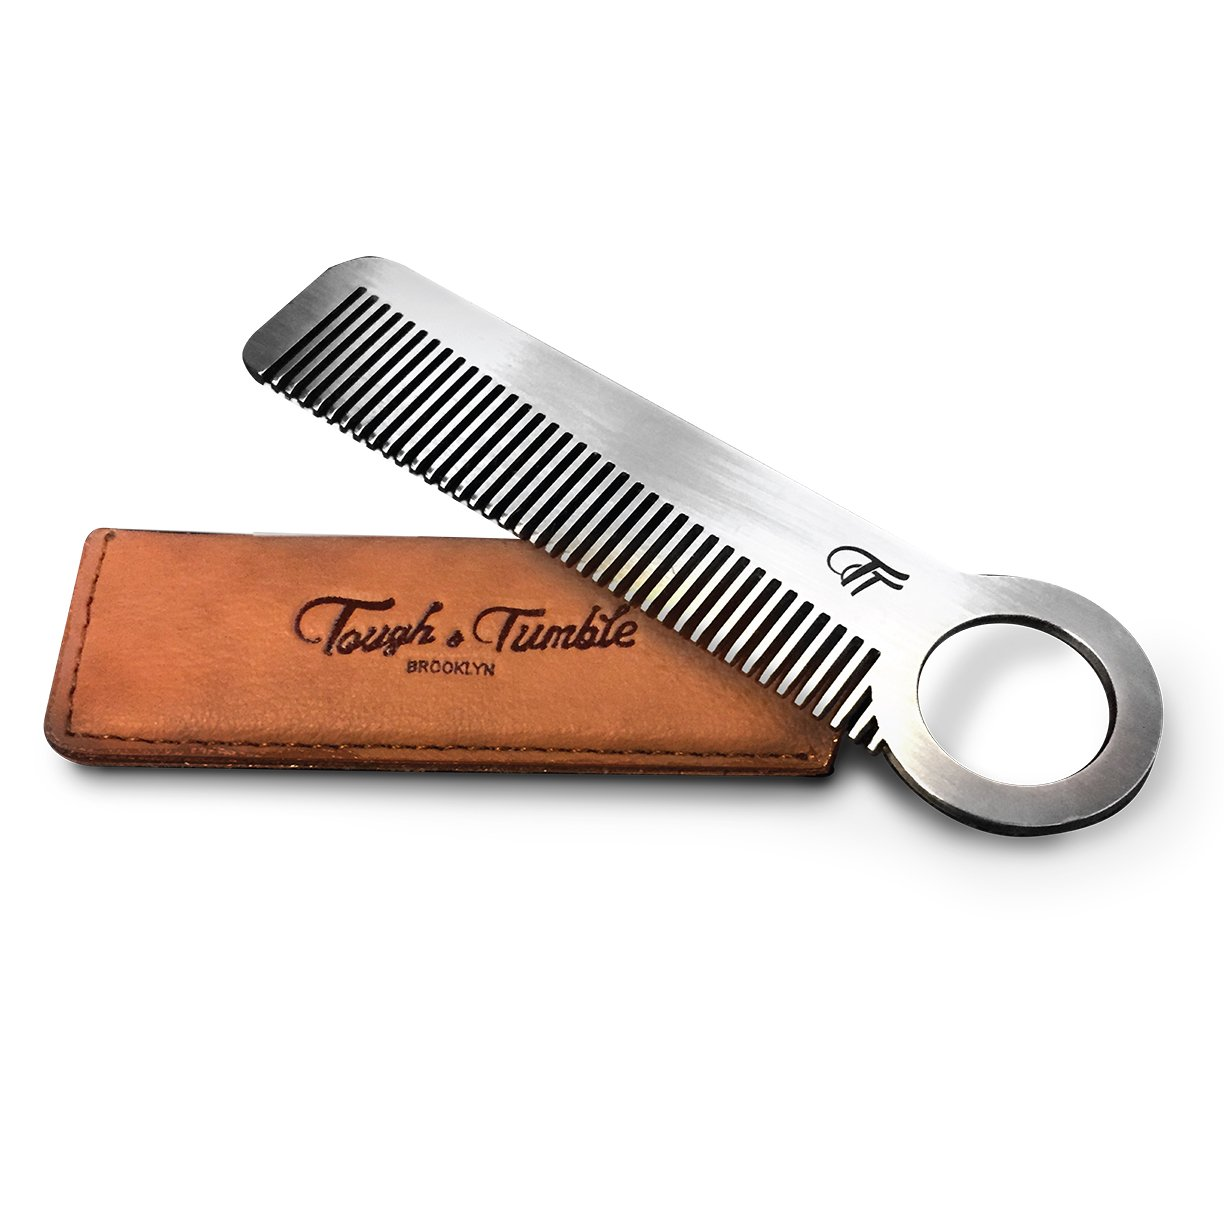 Tough & Tumble Metal Comb''The Revolve'' with Leather Sheath by Tough & Tumble (Image #1)